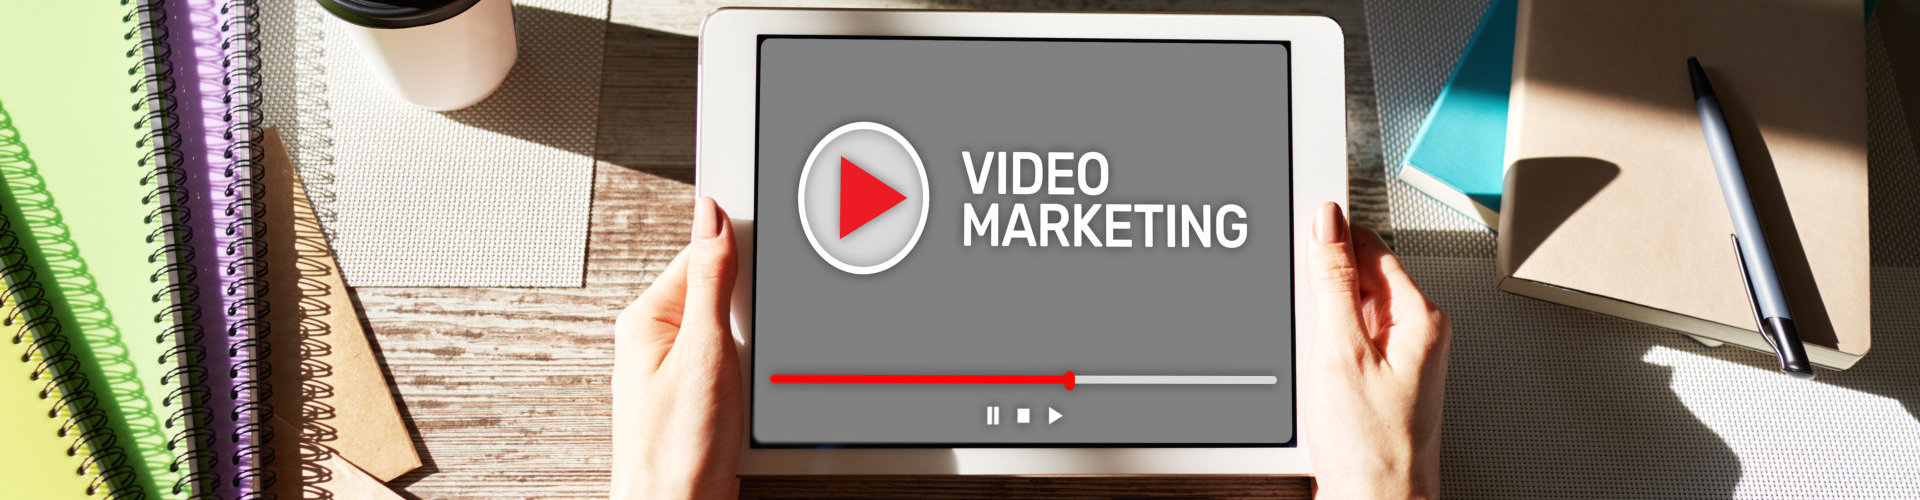 video marketing concept